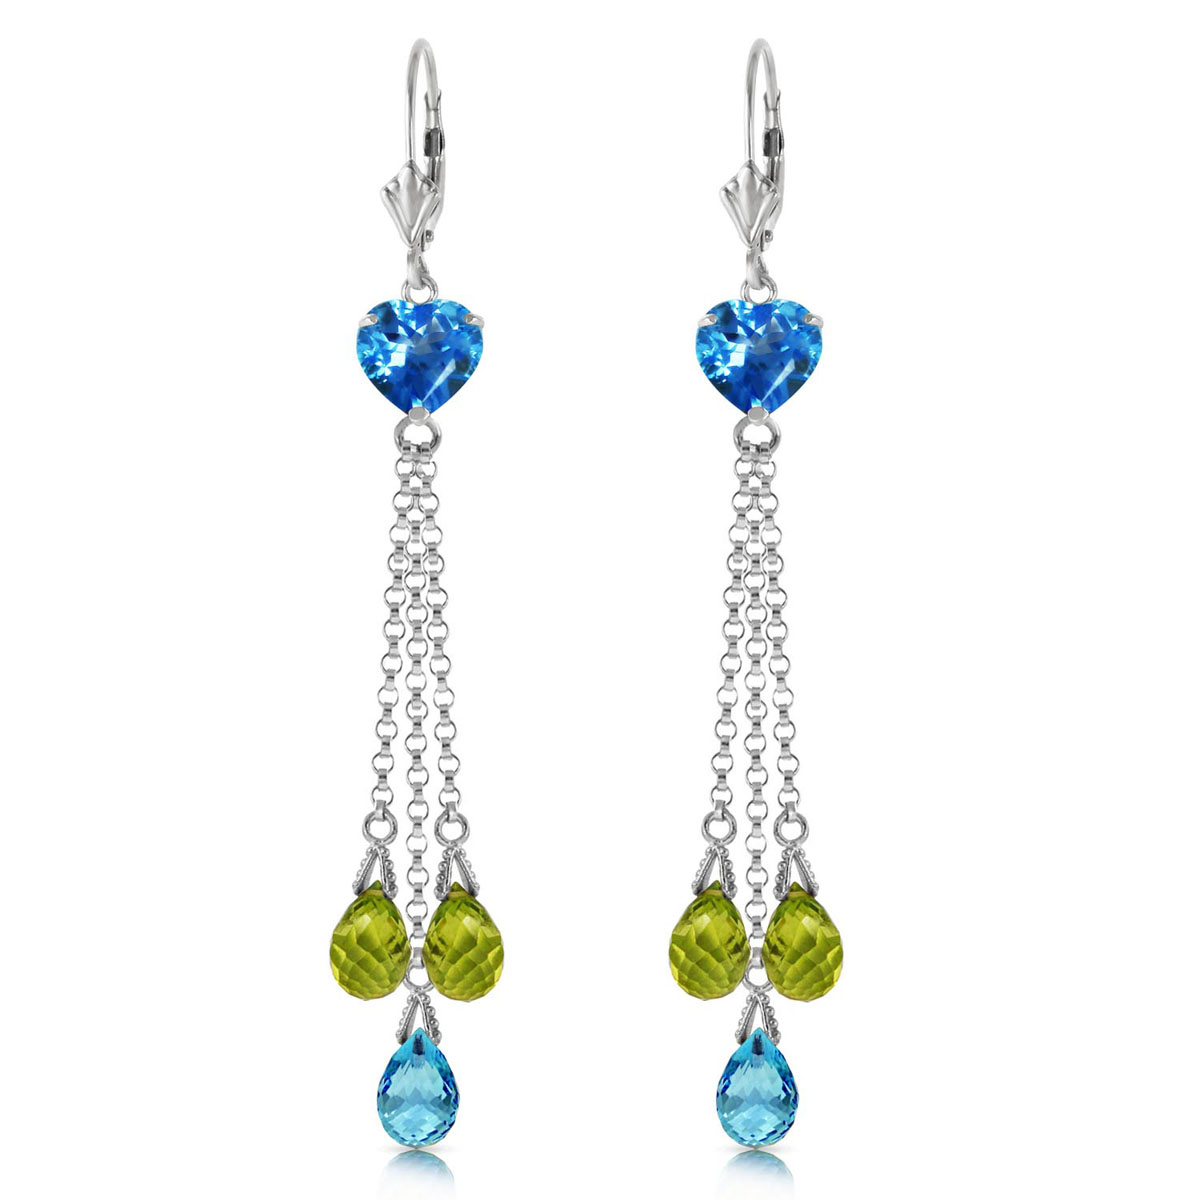 Blue Topaz & Peridot Vestige Drop Earrings in 9ct White Gold